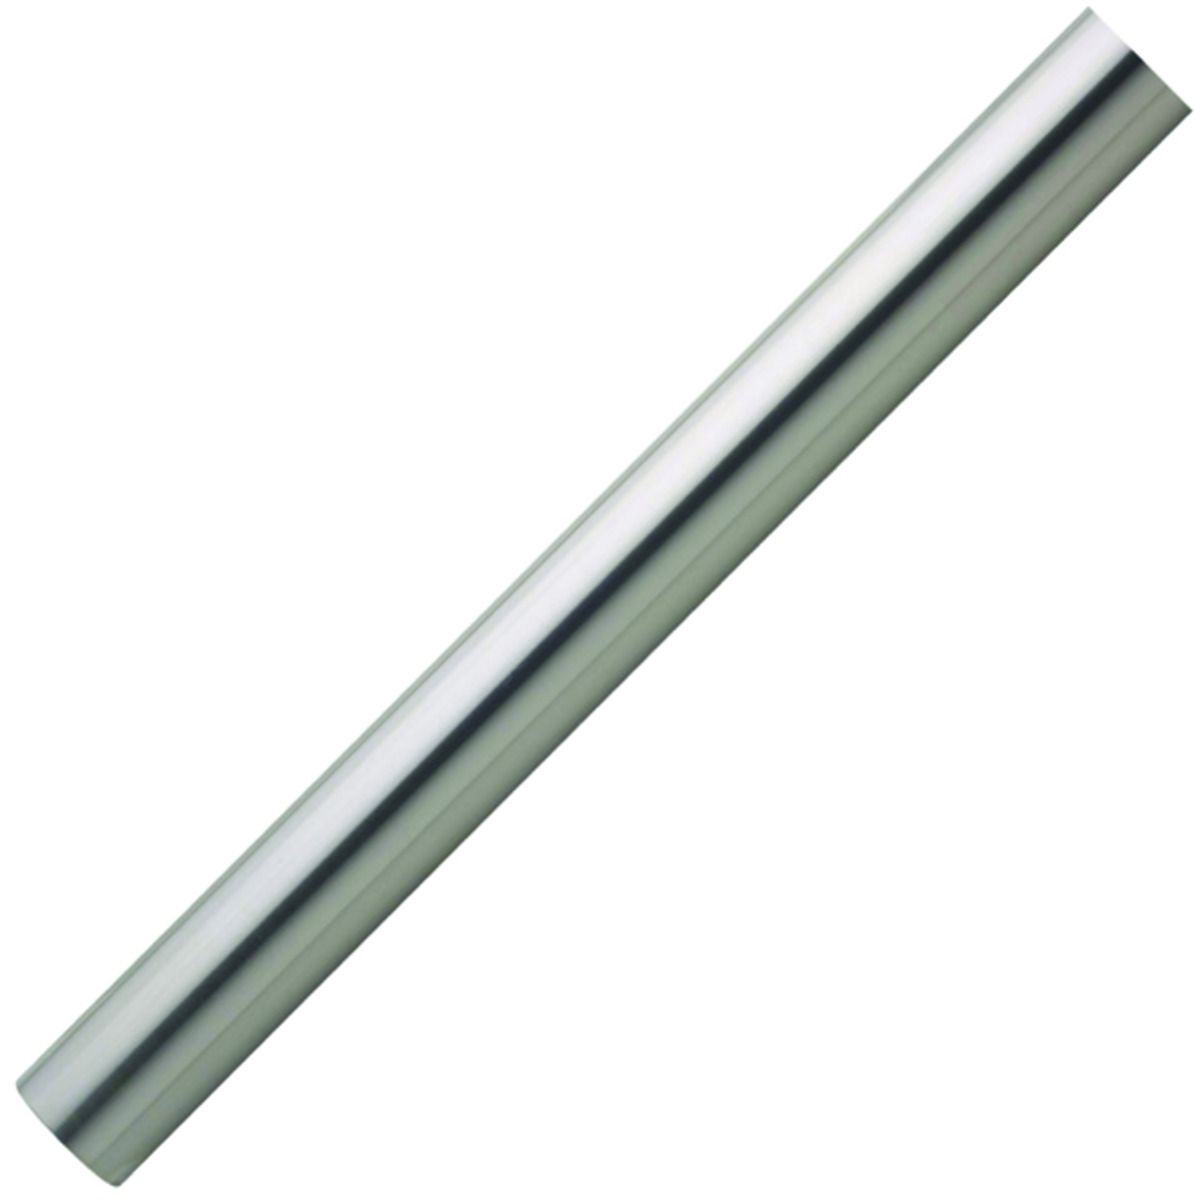 Compare prices for Brushed Finish Handrail 40 x 3600mm Interior